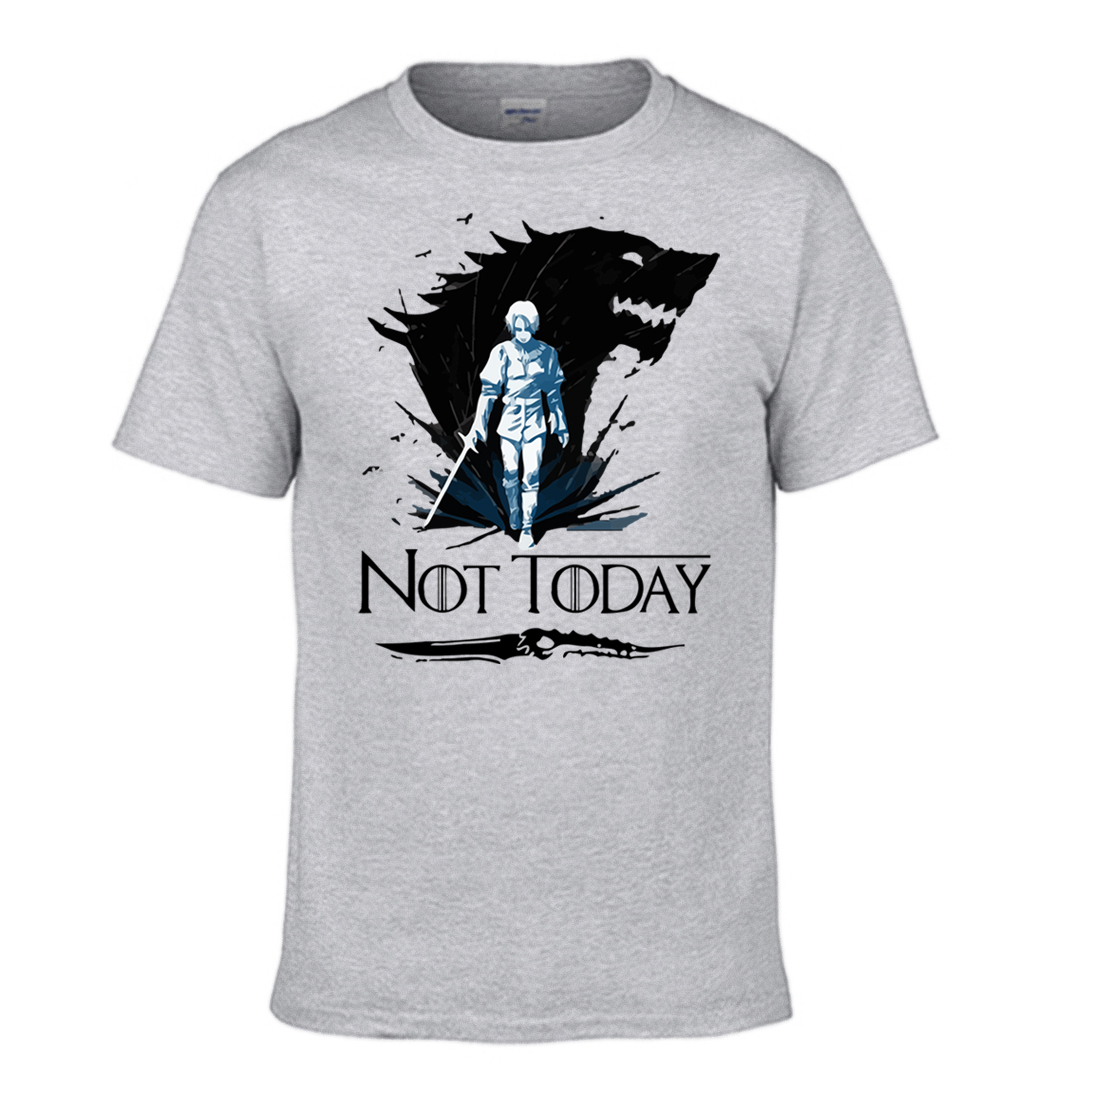 Ayra Stark Game Of Thrones Tshirt Men Not Today   T     Shirt   The Night King Summer Top   Shirts   Cotton Short Sleeve Tops Cool   T  -  Shirt